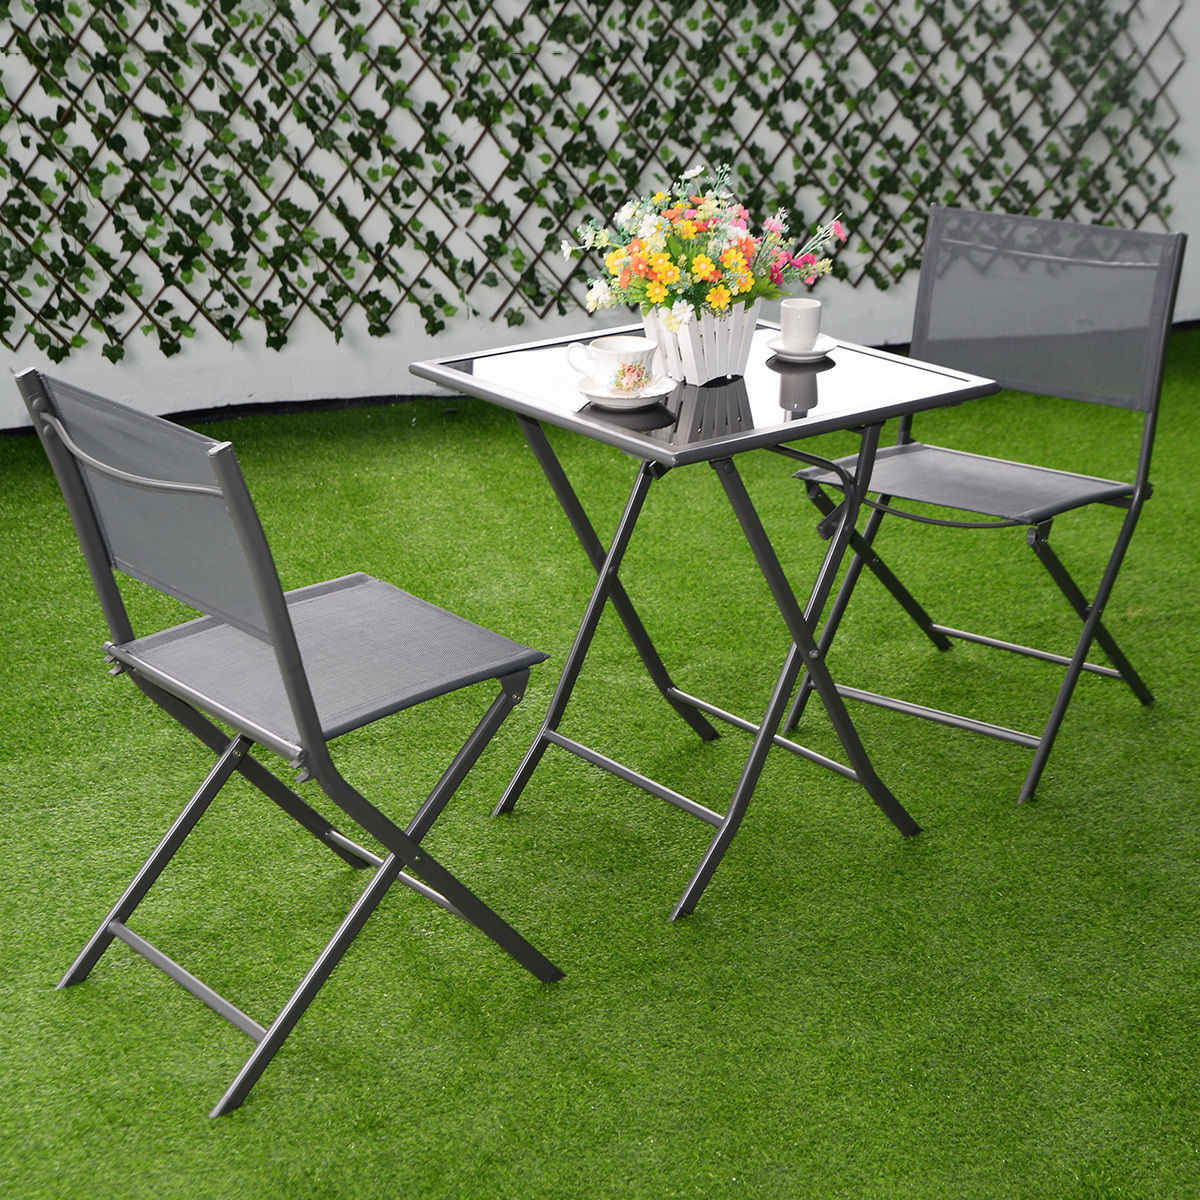 Bistro Table And Chairs Outdoor costway 3pcs bistro set garden backyard table chairs outdoor patio